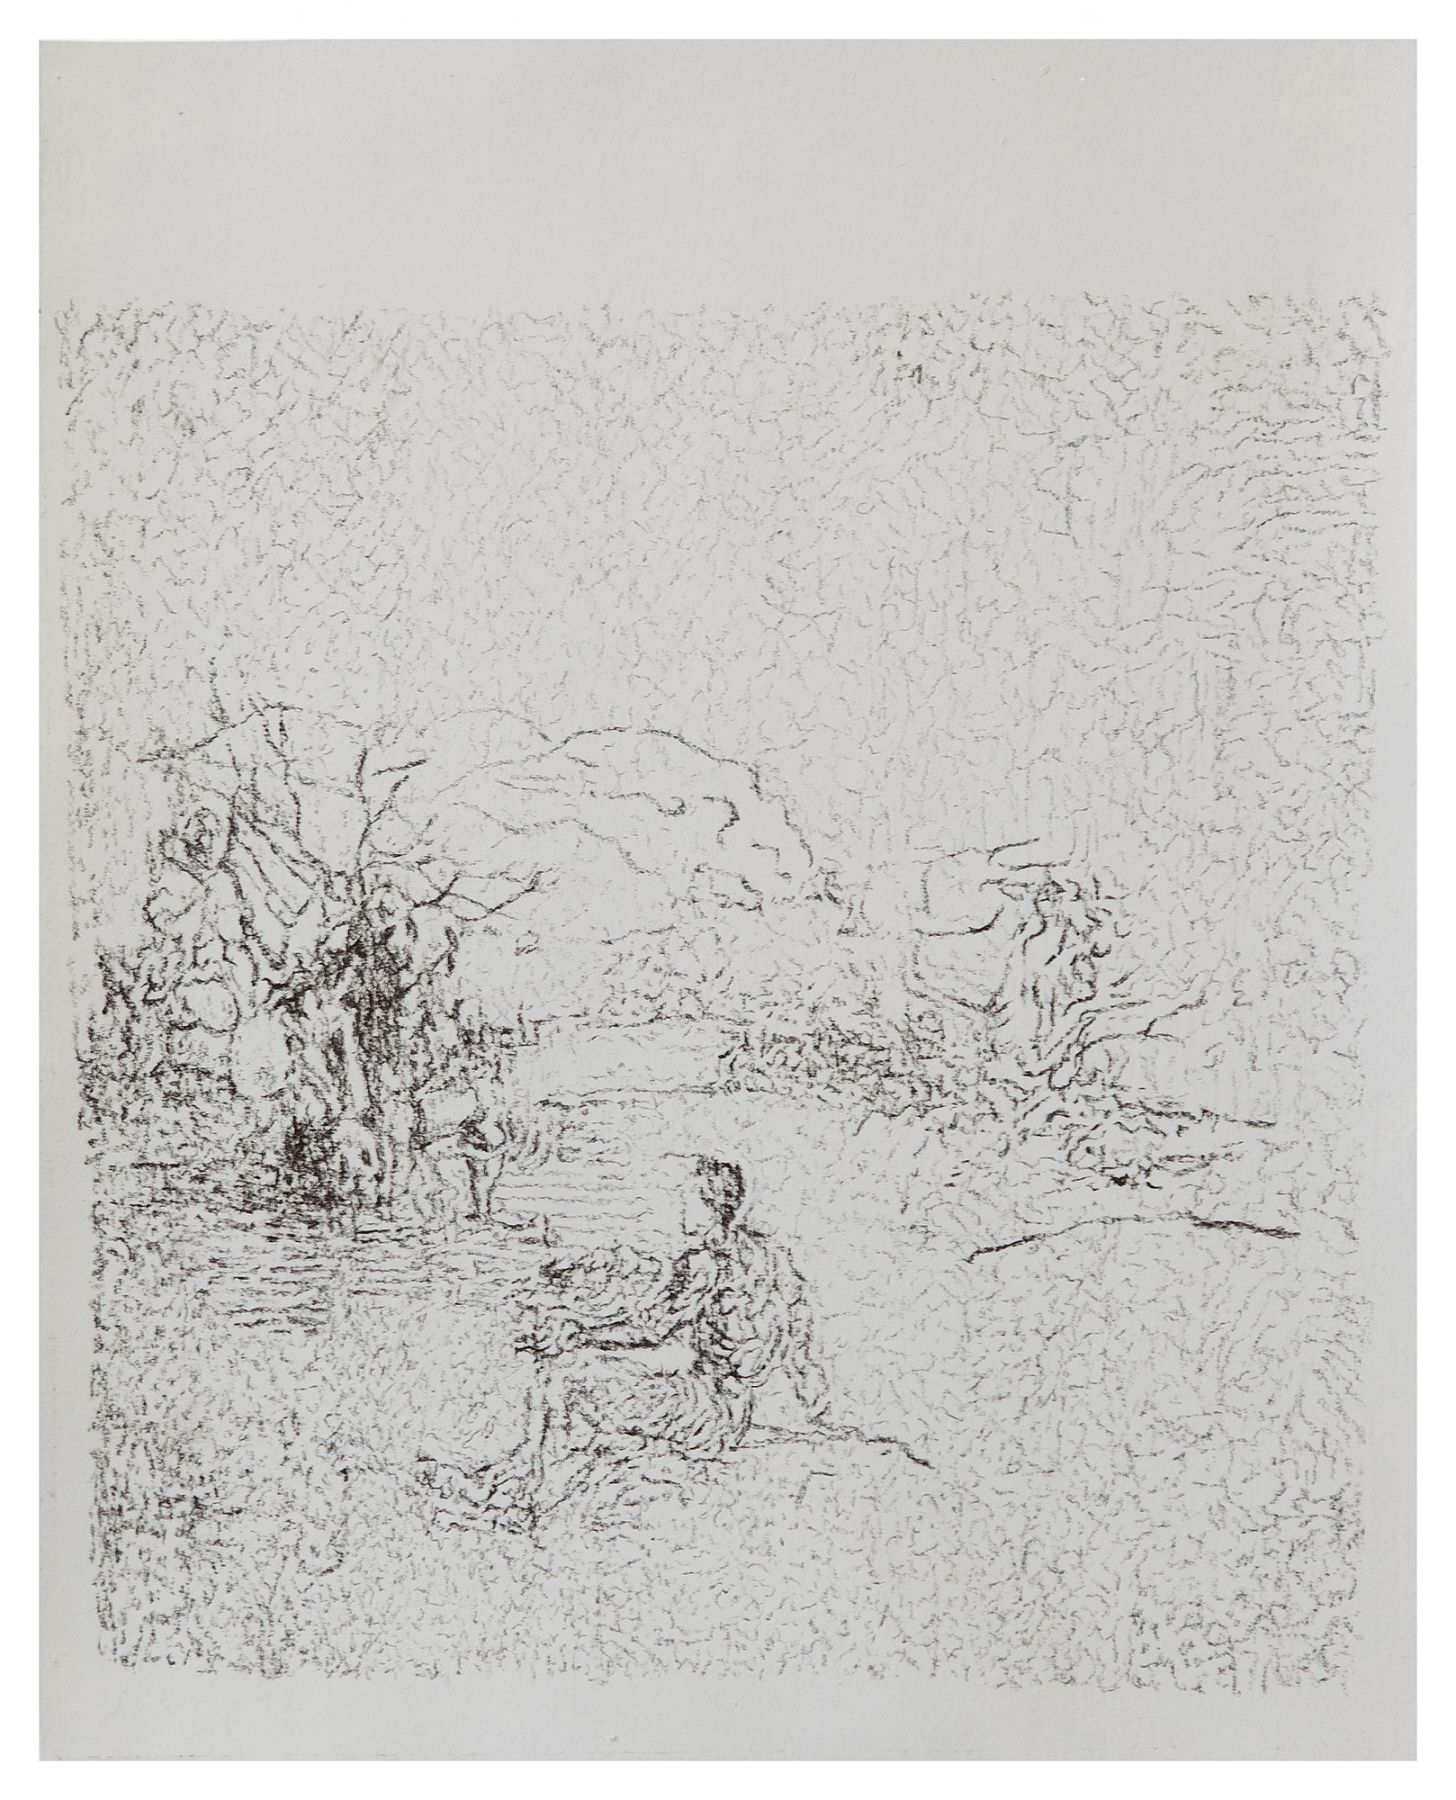 Sergej Jensen Narcissus, 2015 Charcoal on paper Paper: 11 x 8 3/4 inches (27.9 x 22.2 cm) Frame: 13 3/4 x 11 3/8 inches (34.9 x 28.9 cm)